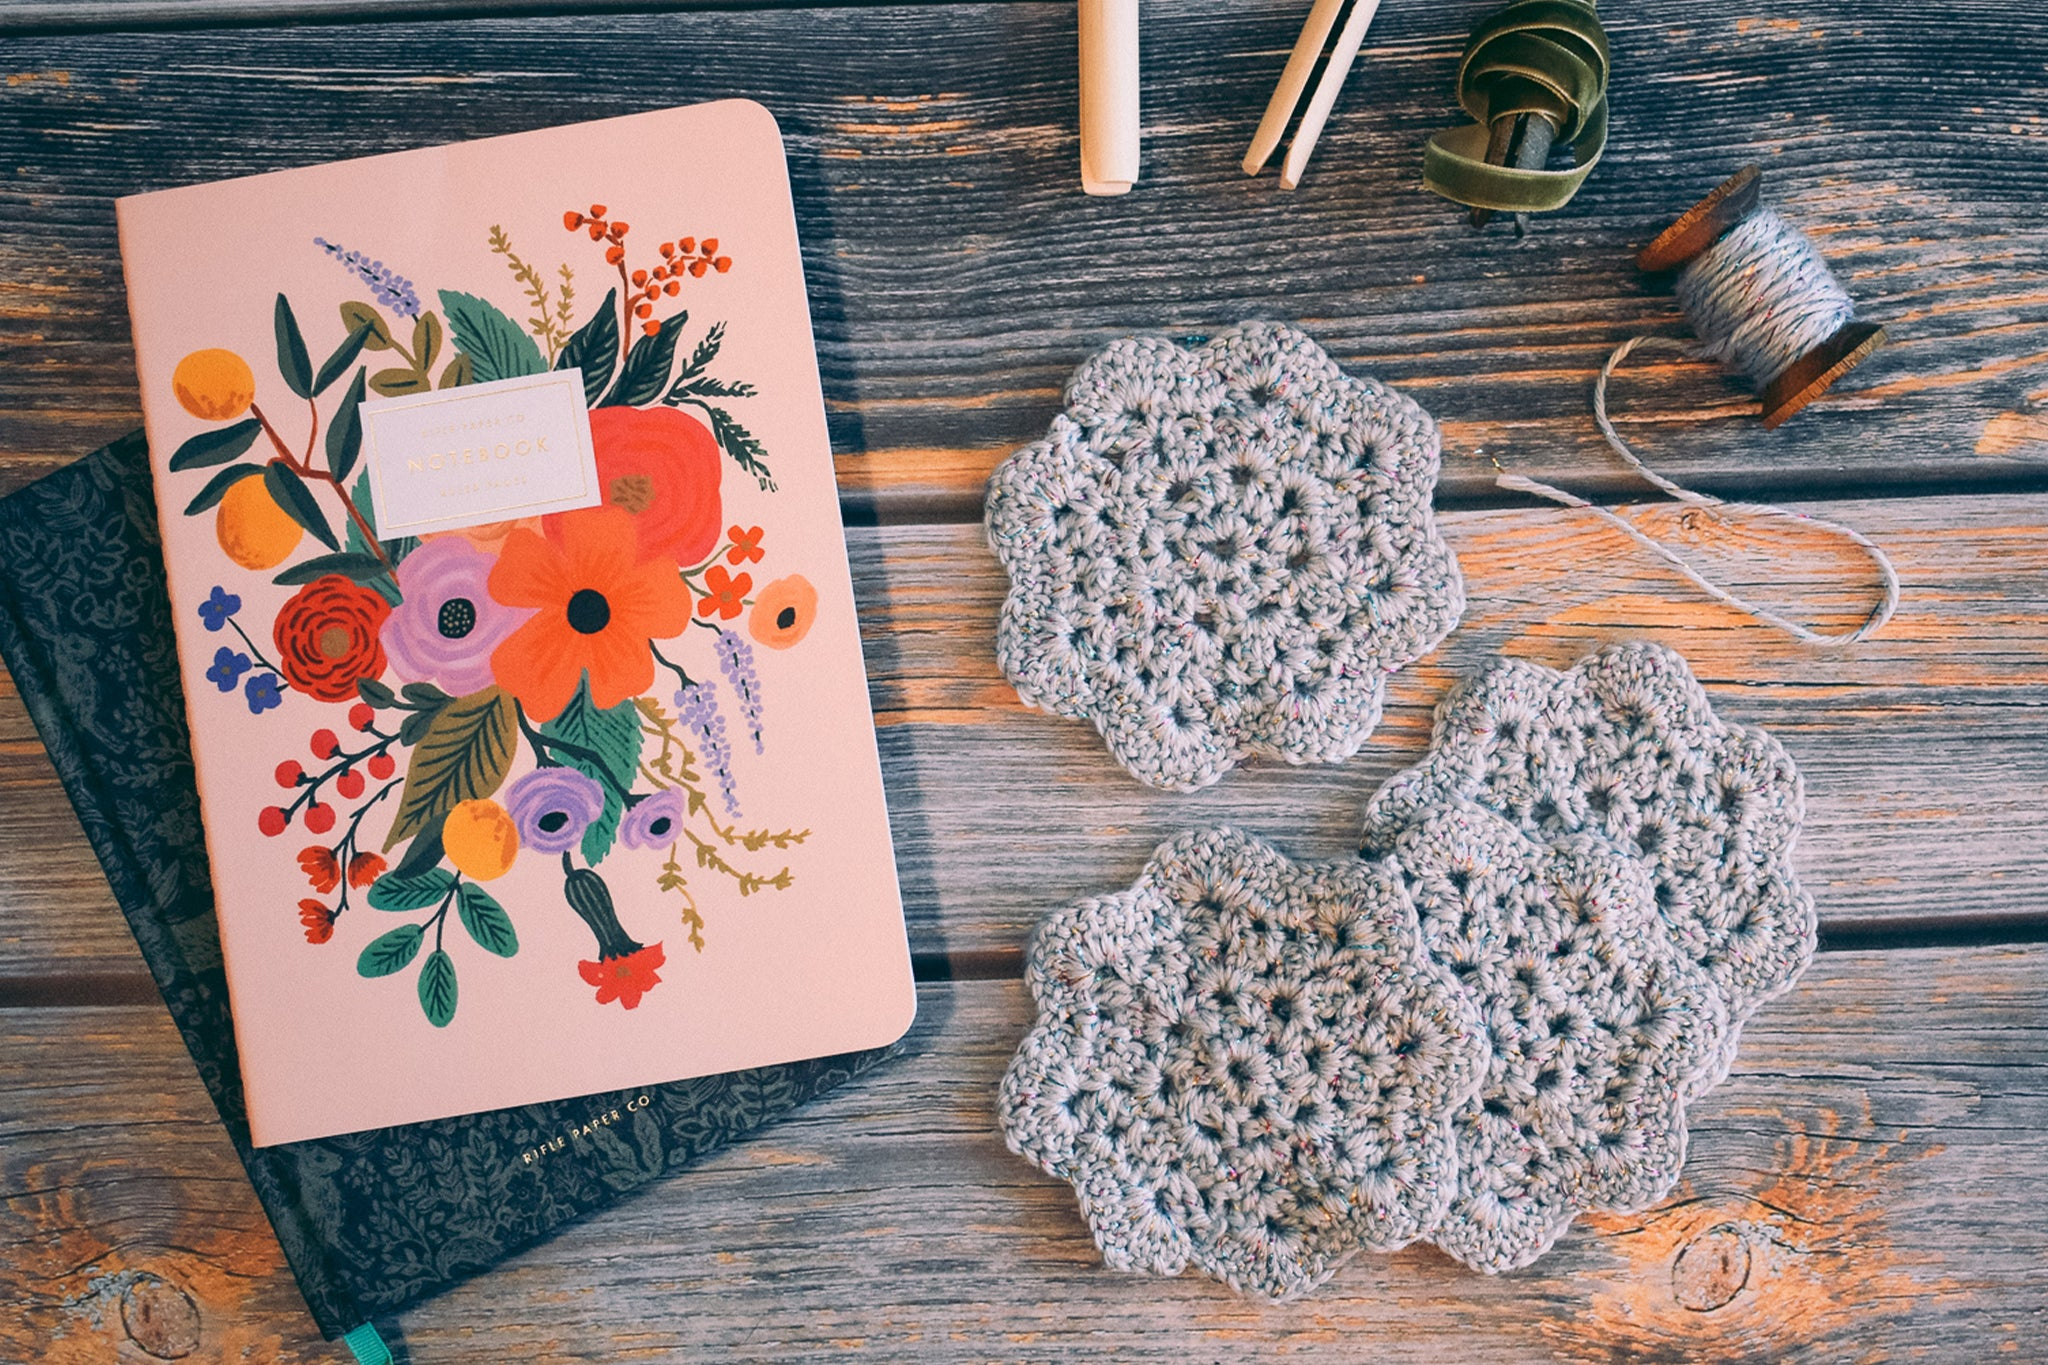 Critter Crafting - Silver Crochet Coasters & Cottagecore Home Accents - Rifle Paper Co. Notebooks and Ribbon